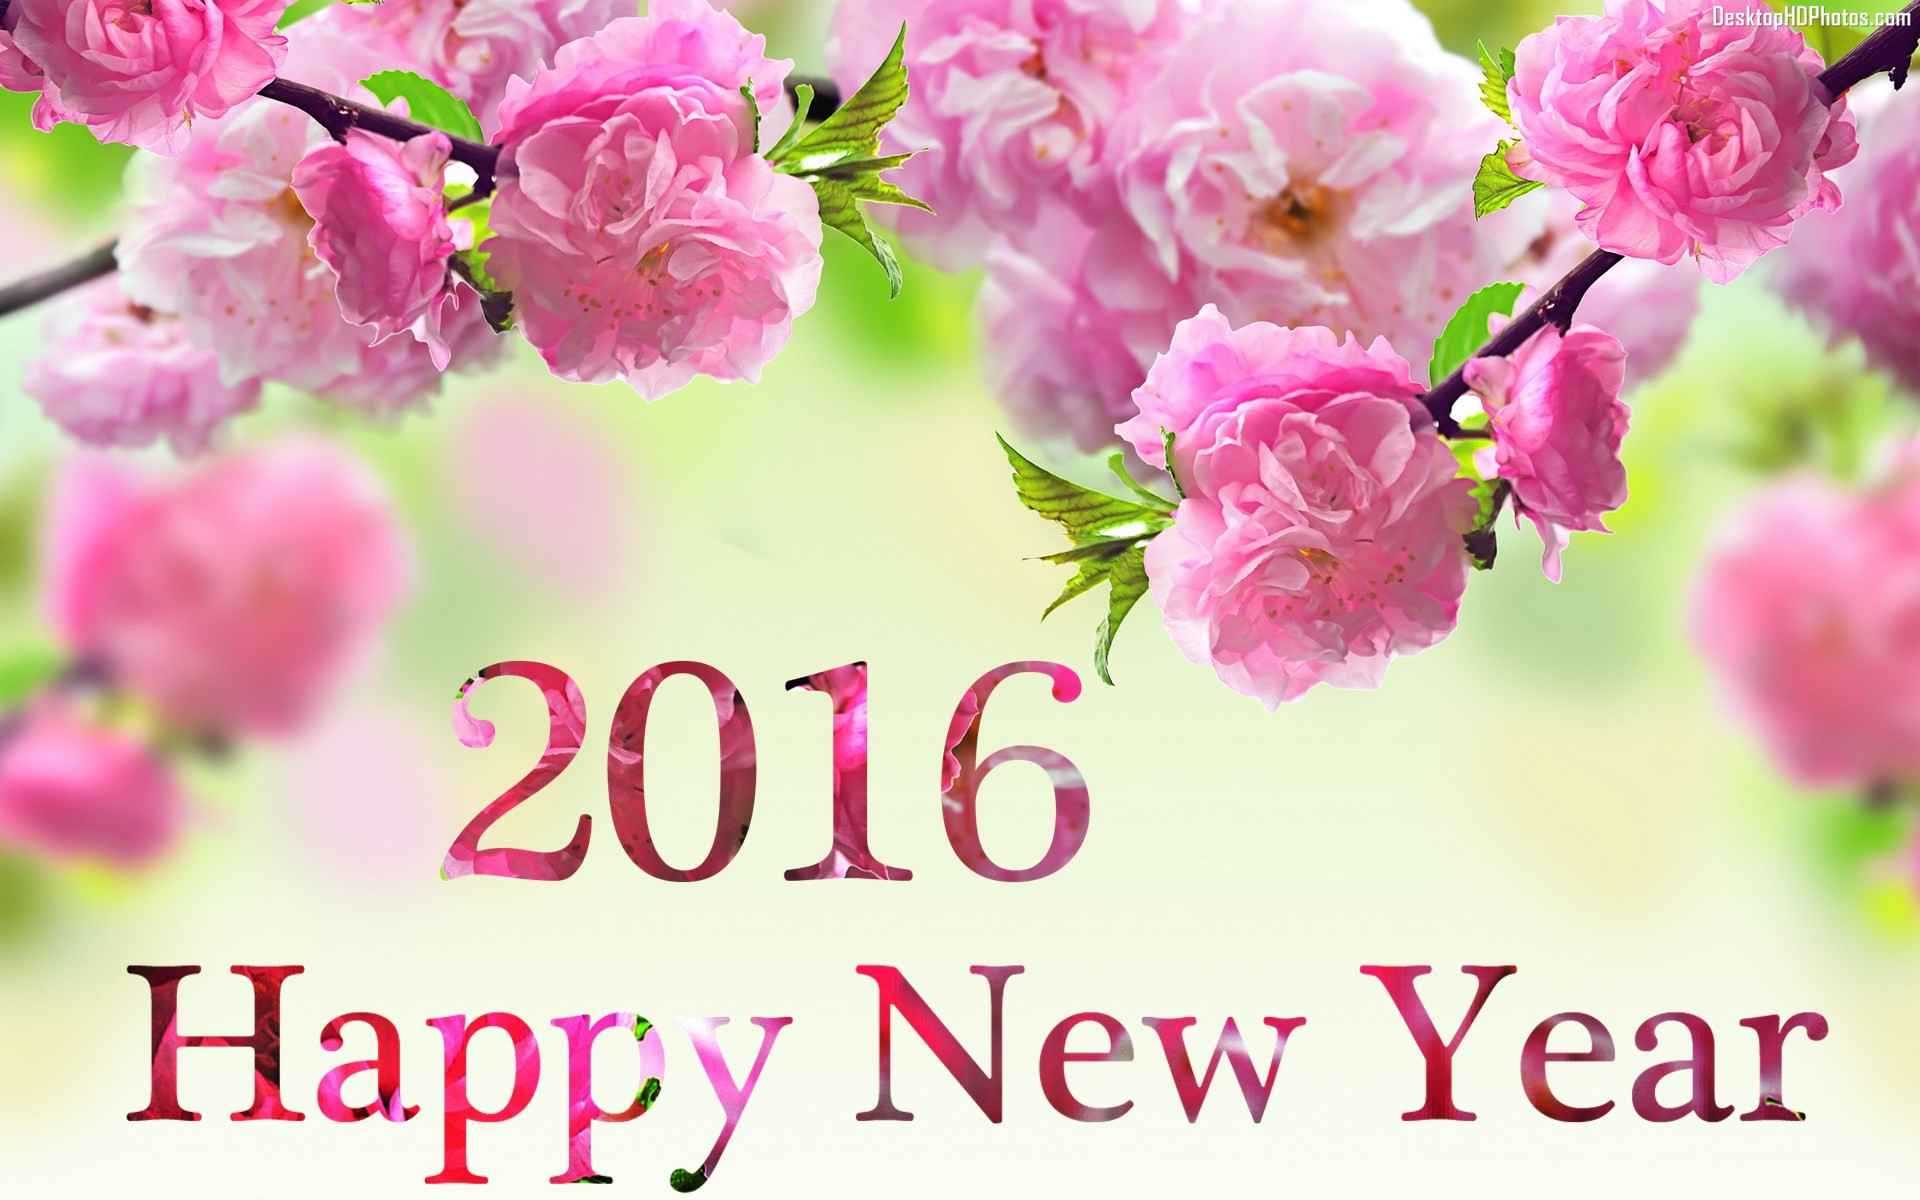 2016 happy new year flowers background